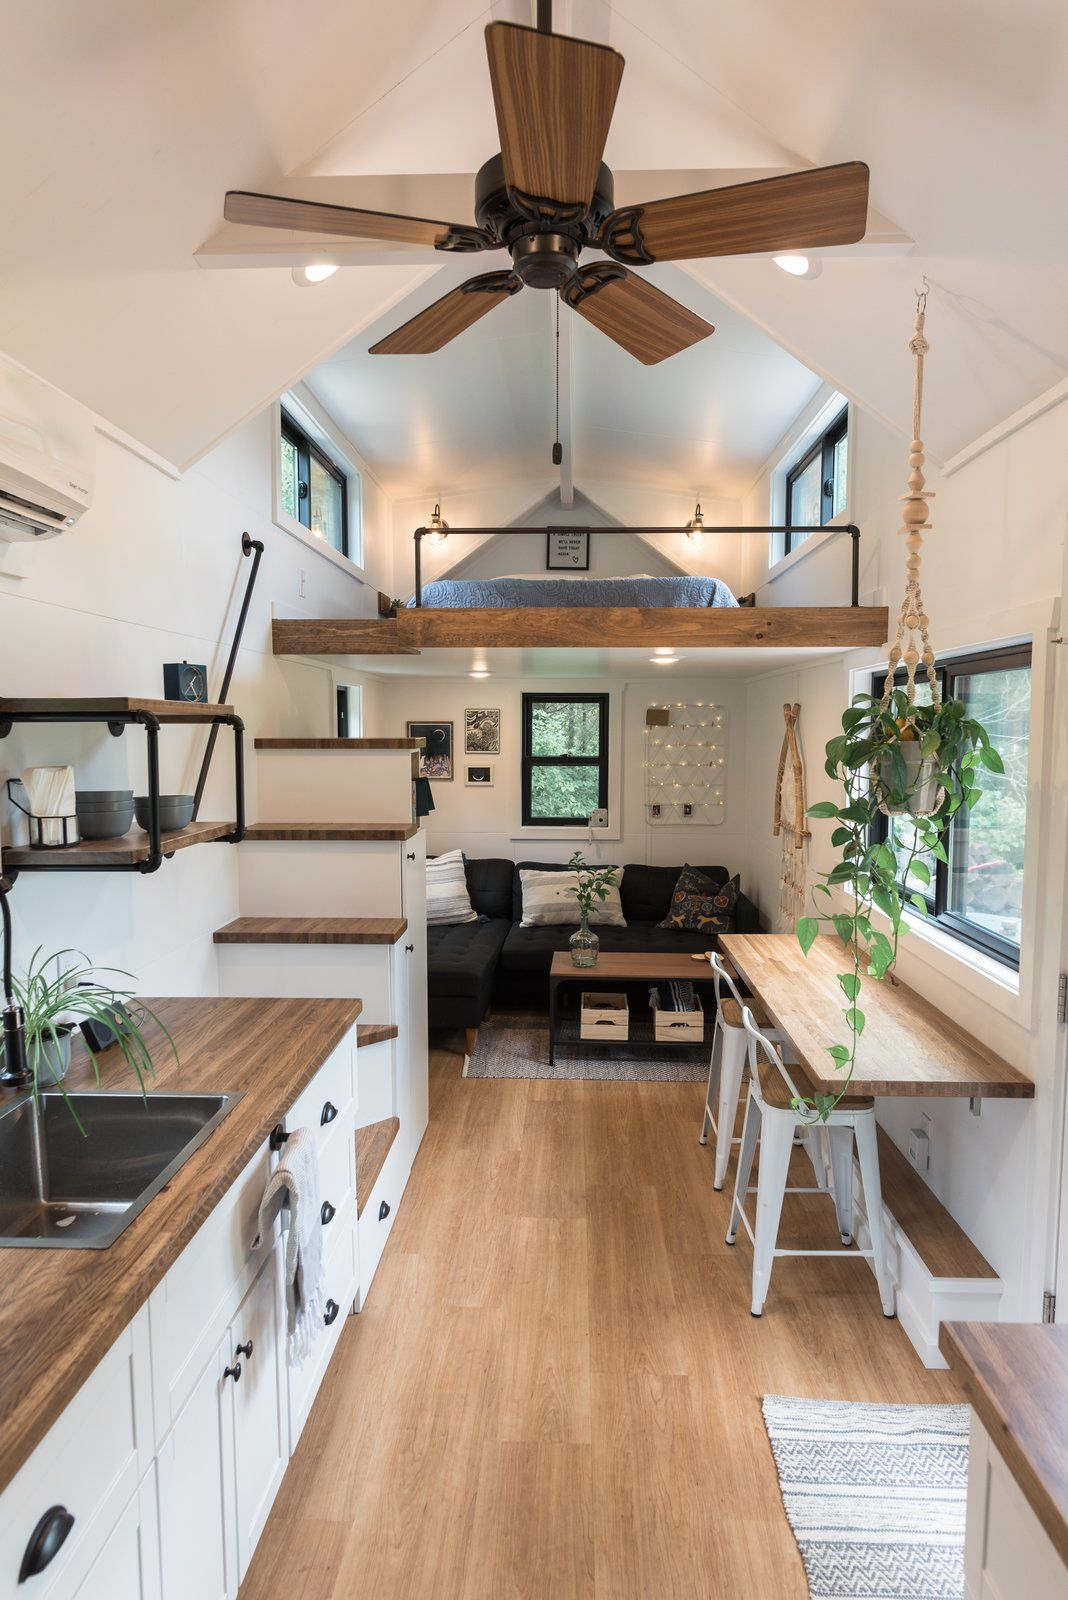 This Magical Dwelling Can Make Your Tiny House Dreams Come True